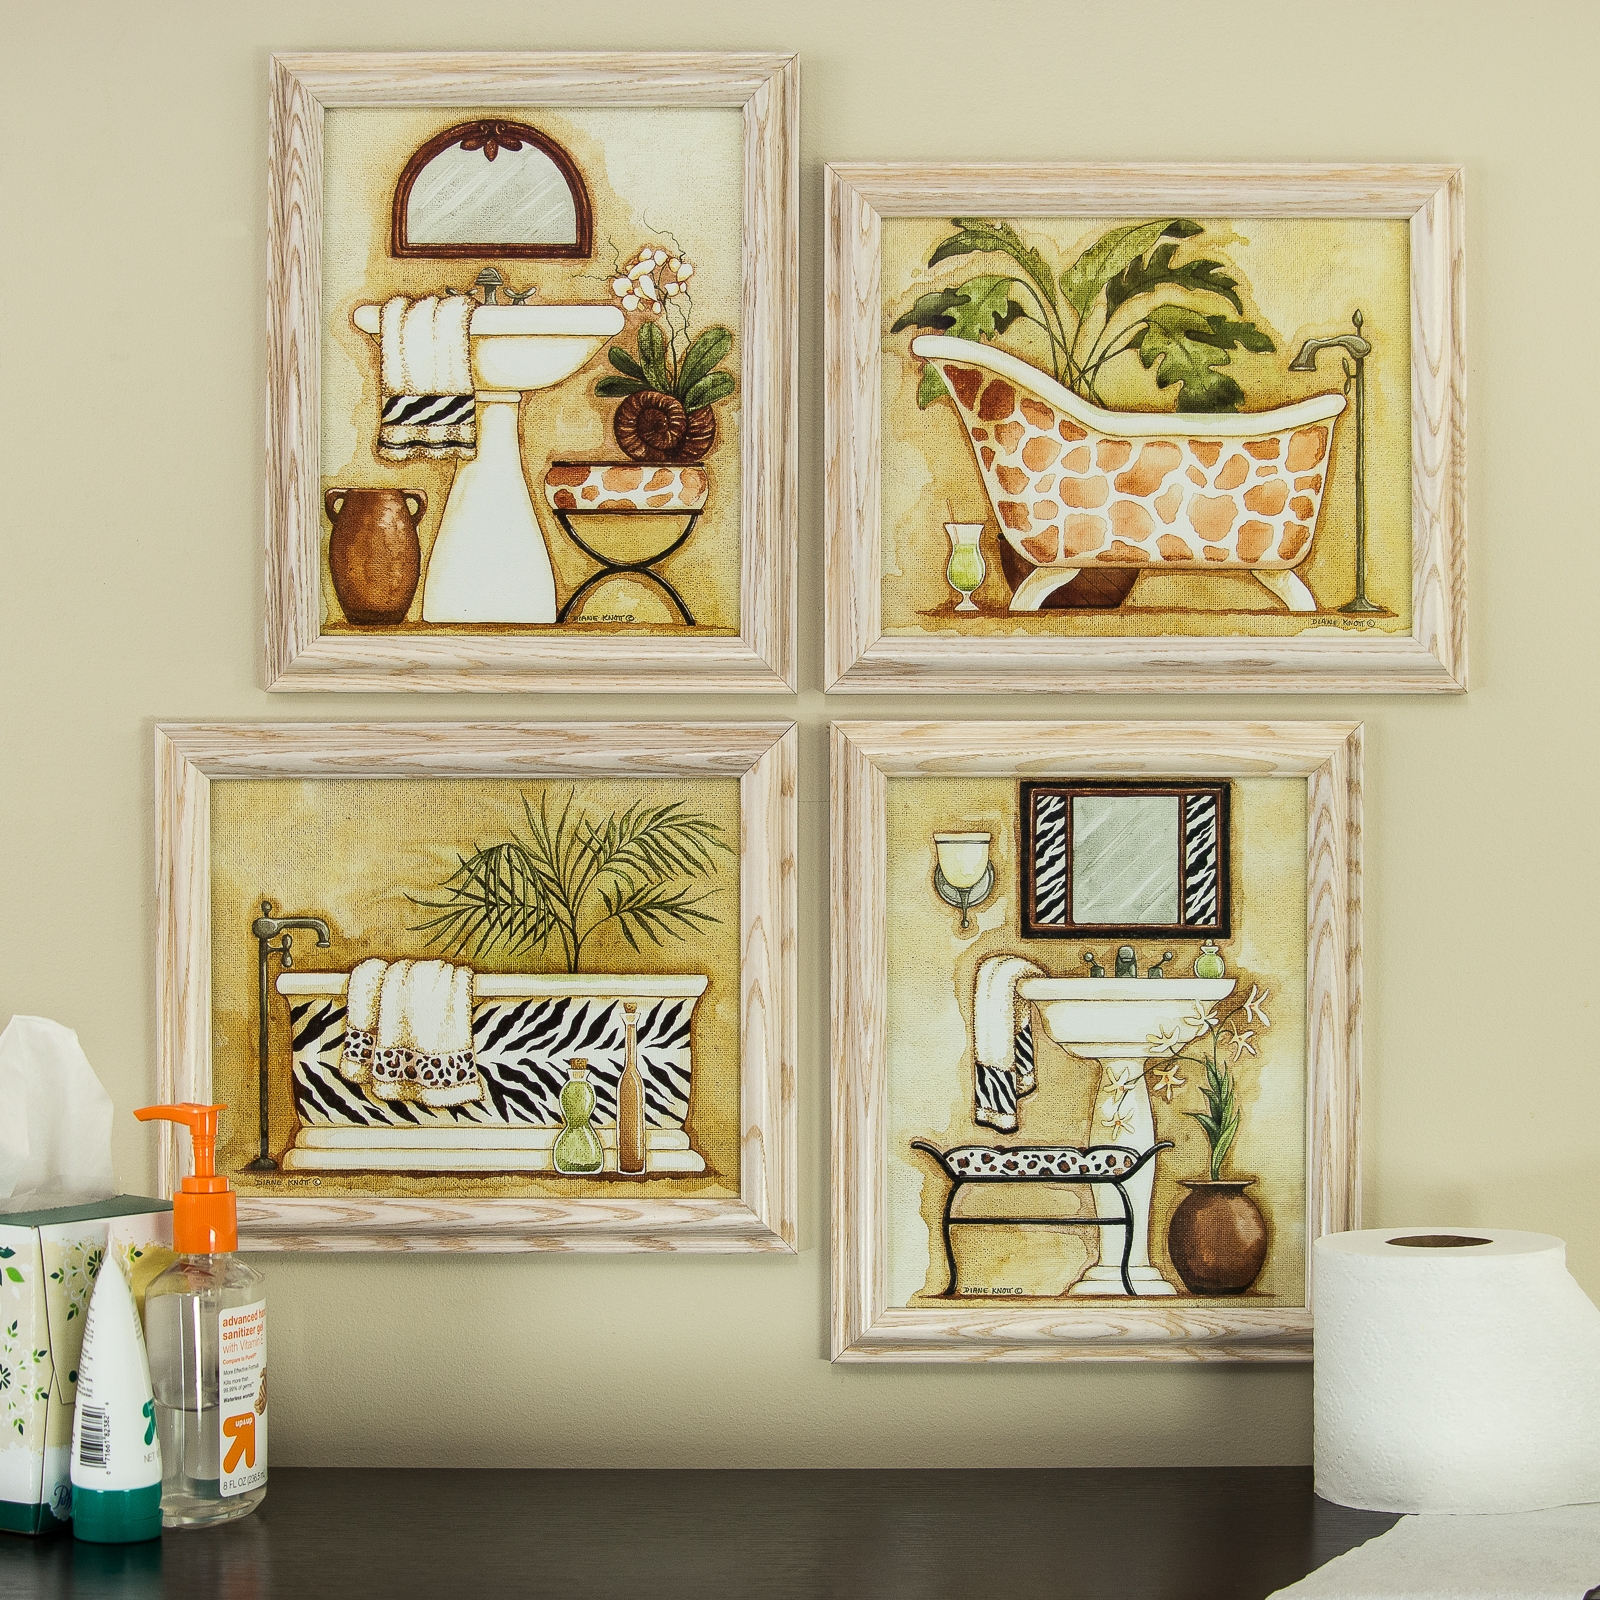 Safari, 8x10 Framed Bathroom Wall Art Set In White